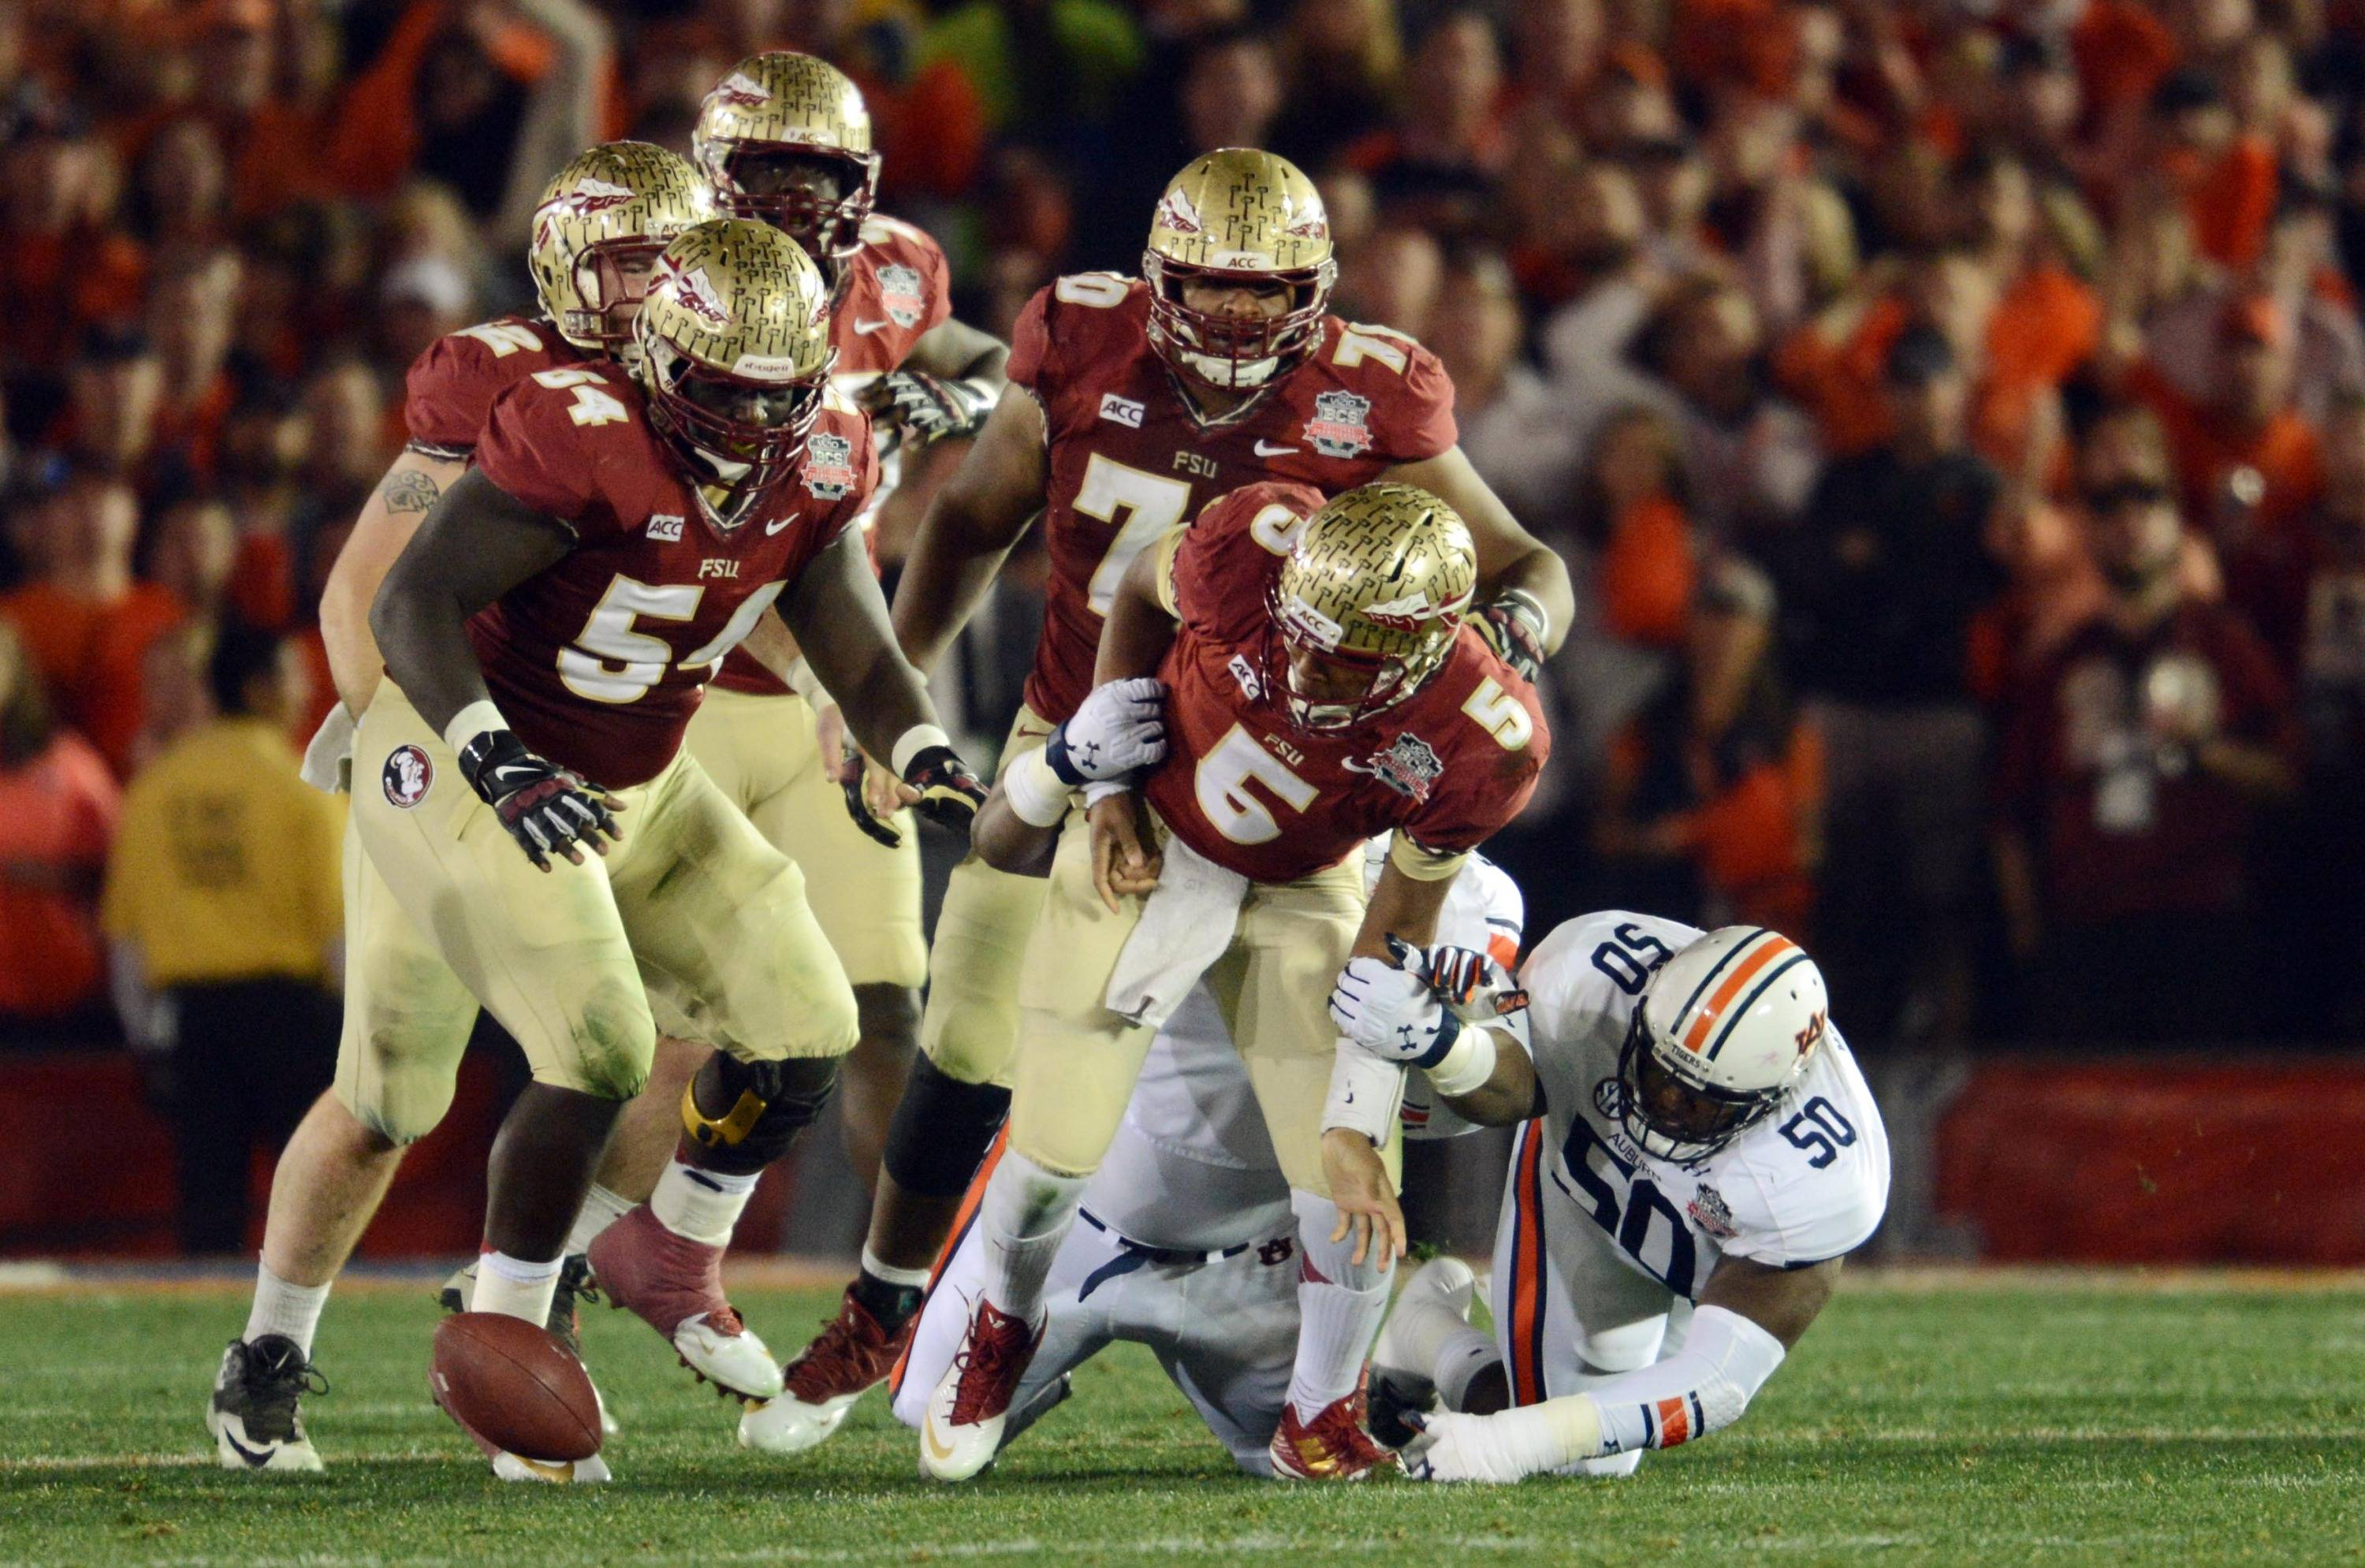 Jan 6, 2014; Pasadena, CA, USA; Florida State Seminoles quarterback Jameis Winston (5) fumbles the ball as Auburn Tigers defensive tackle Ben Bradley (50) closes in for the tackle during the first half of the 2014 BCS National Championship game at the Rose Bowl.  Mandatory Credit: Jayne Kamin-Oncea-USA TODAY Sports